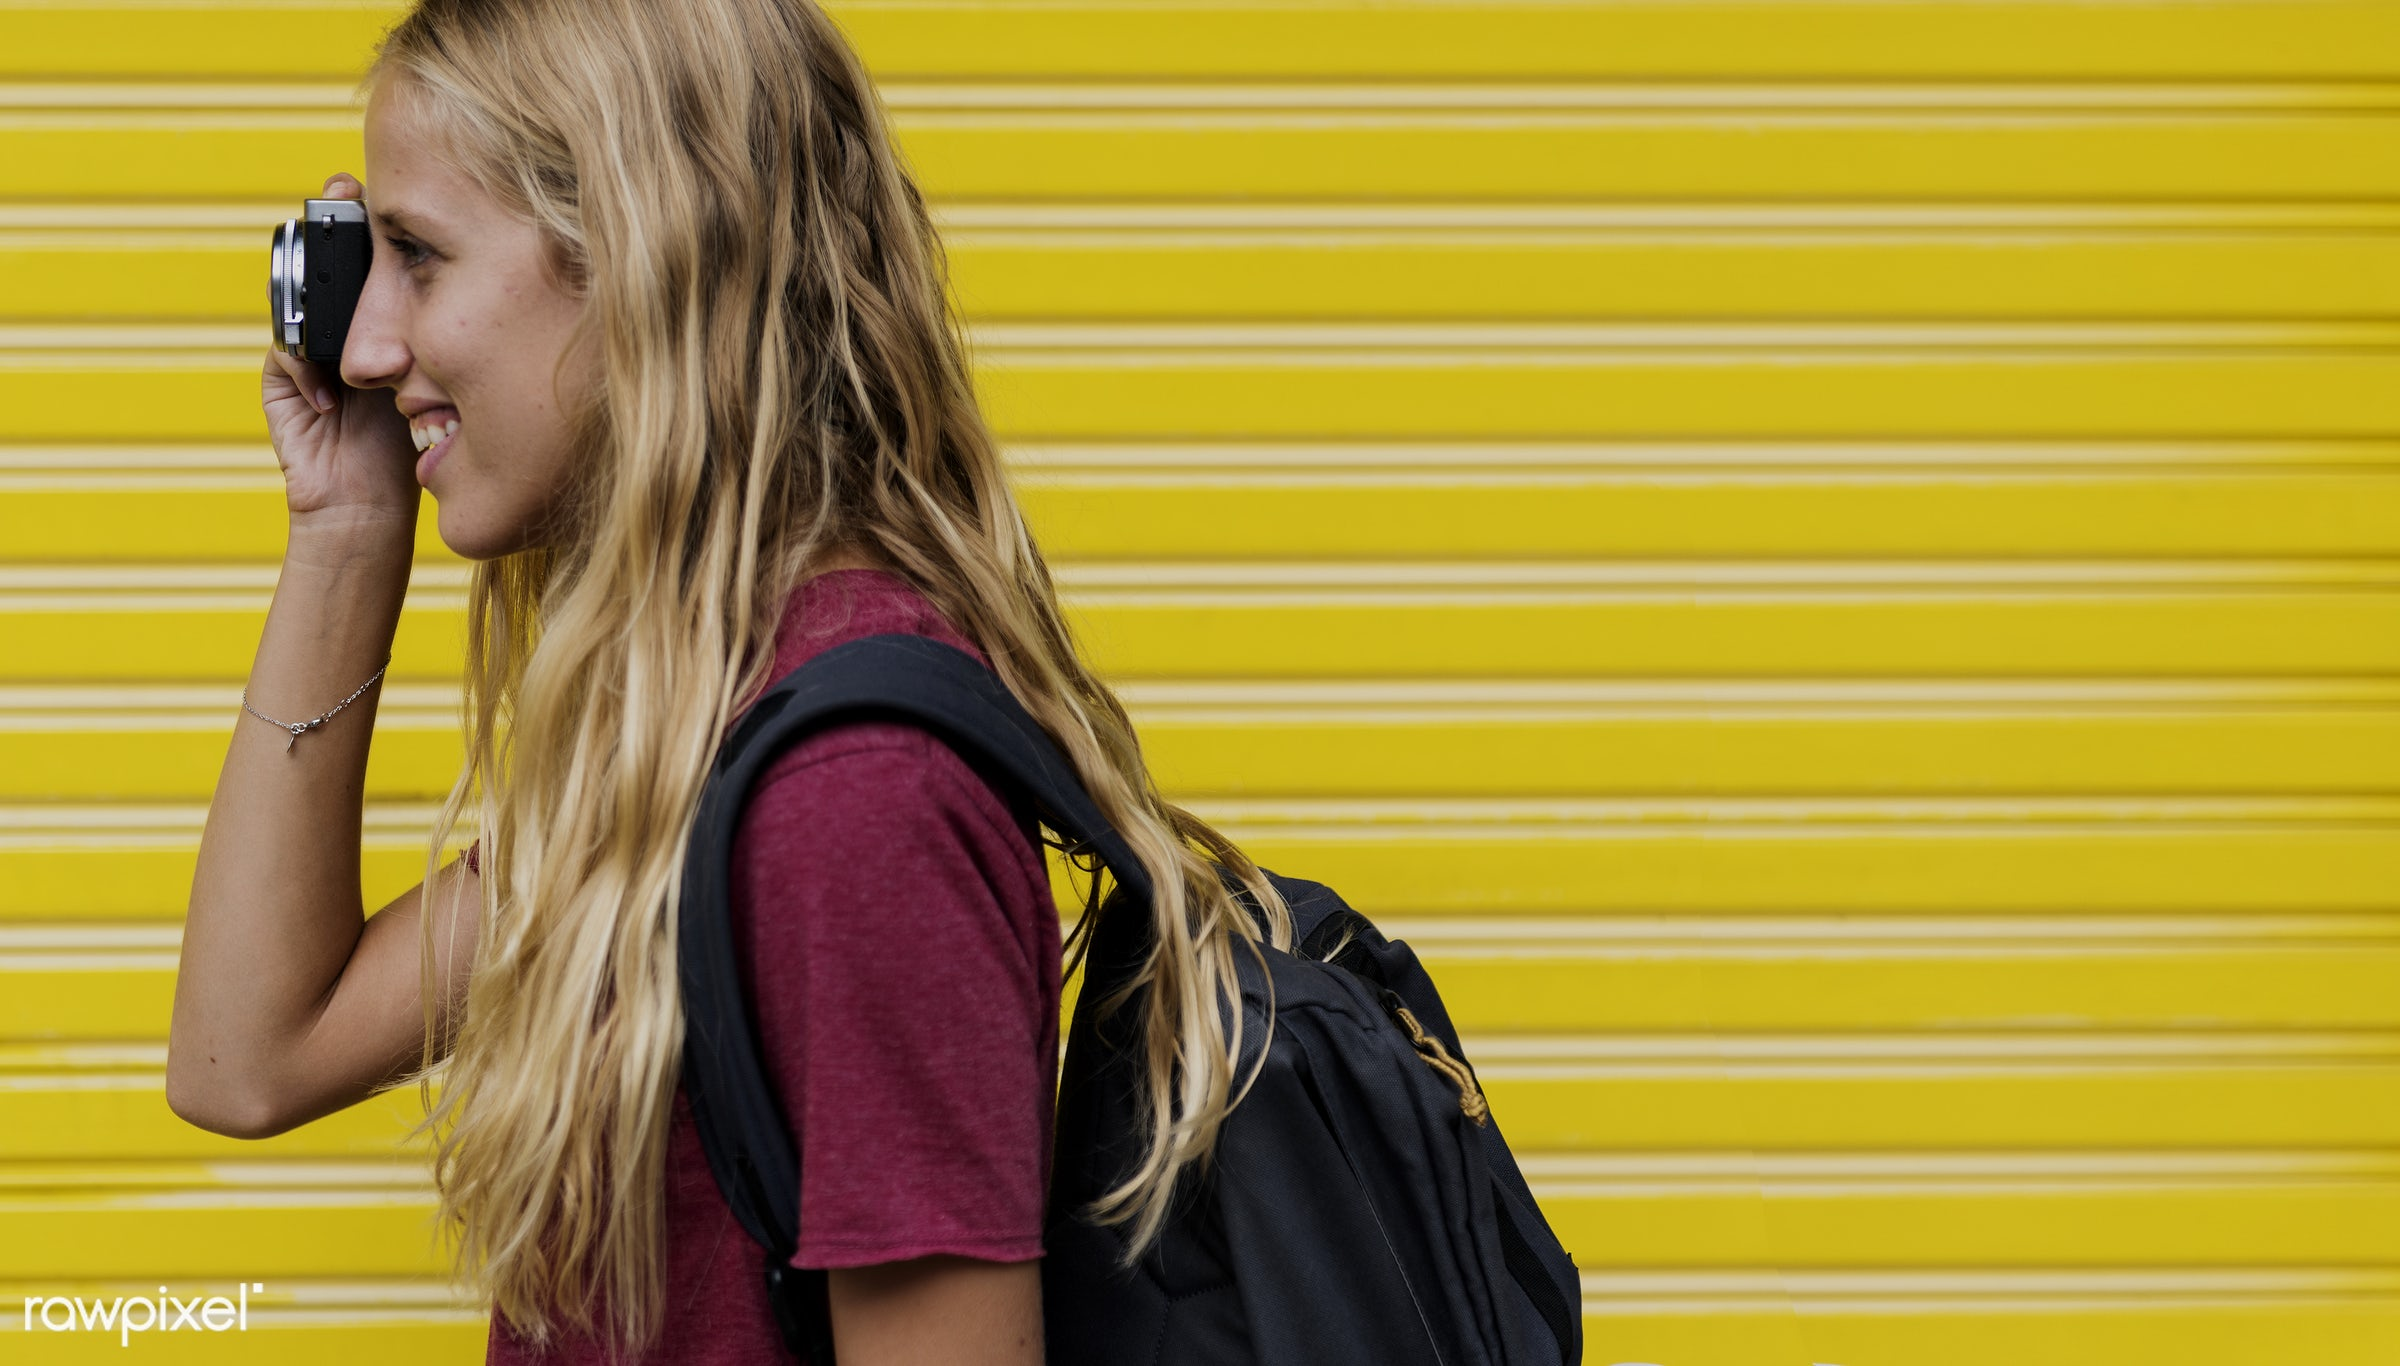 backpackers, side view, pictures, travel, yellow, people, caucasian, wanderlust, girl, woman, backpack, trip, smile,...